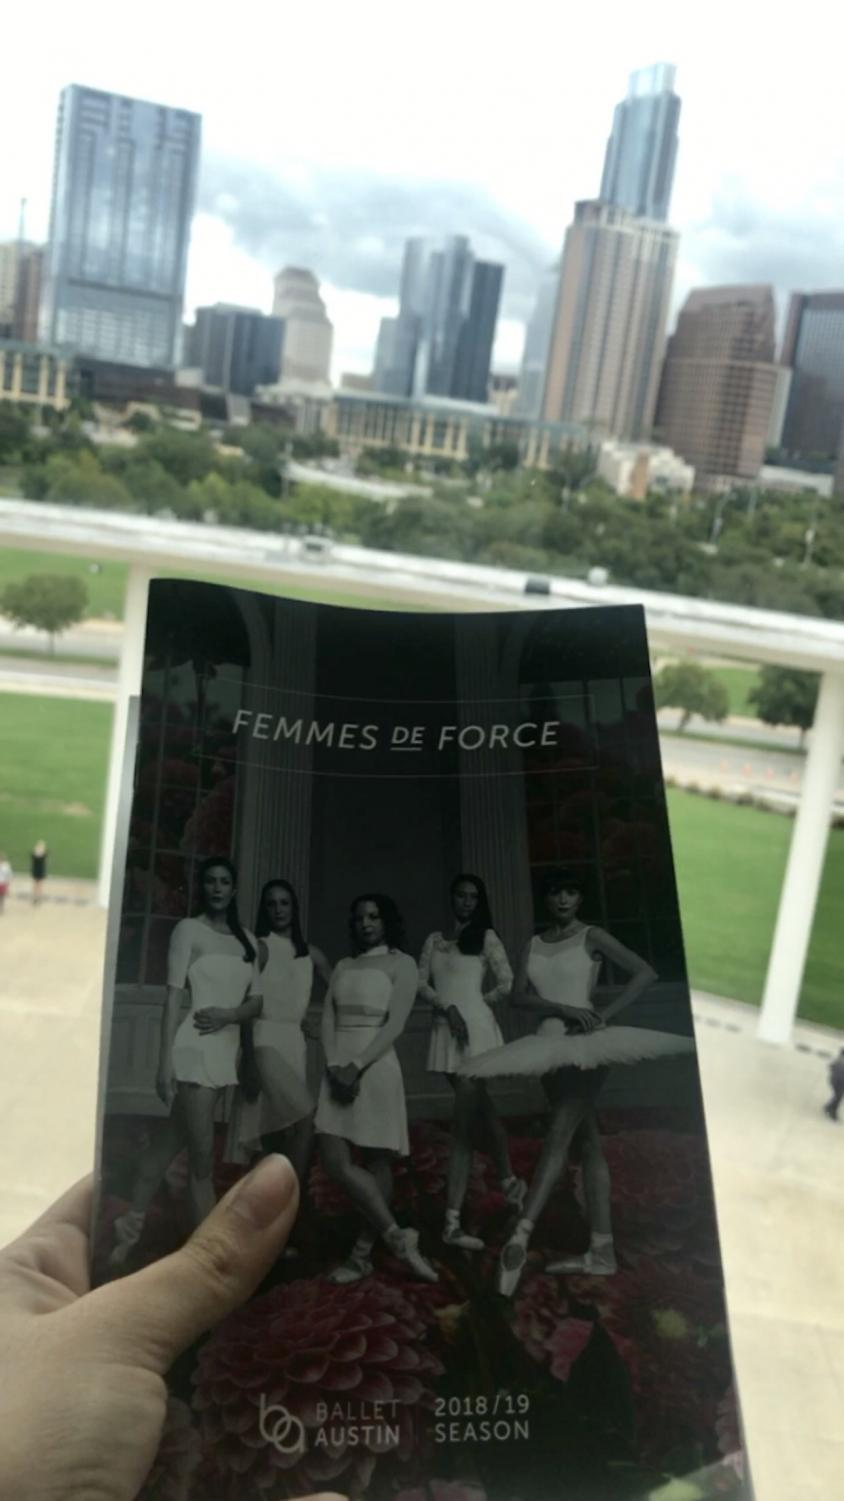 Ballet Austin's Program 'Femmes De Force' highlights powerful female leads in upcoming shows.